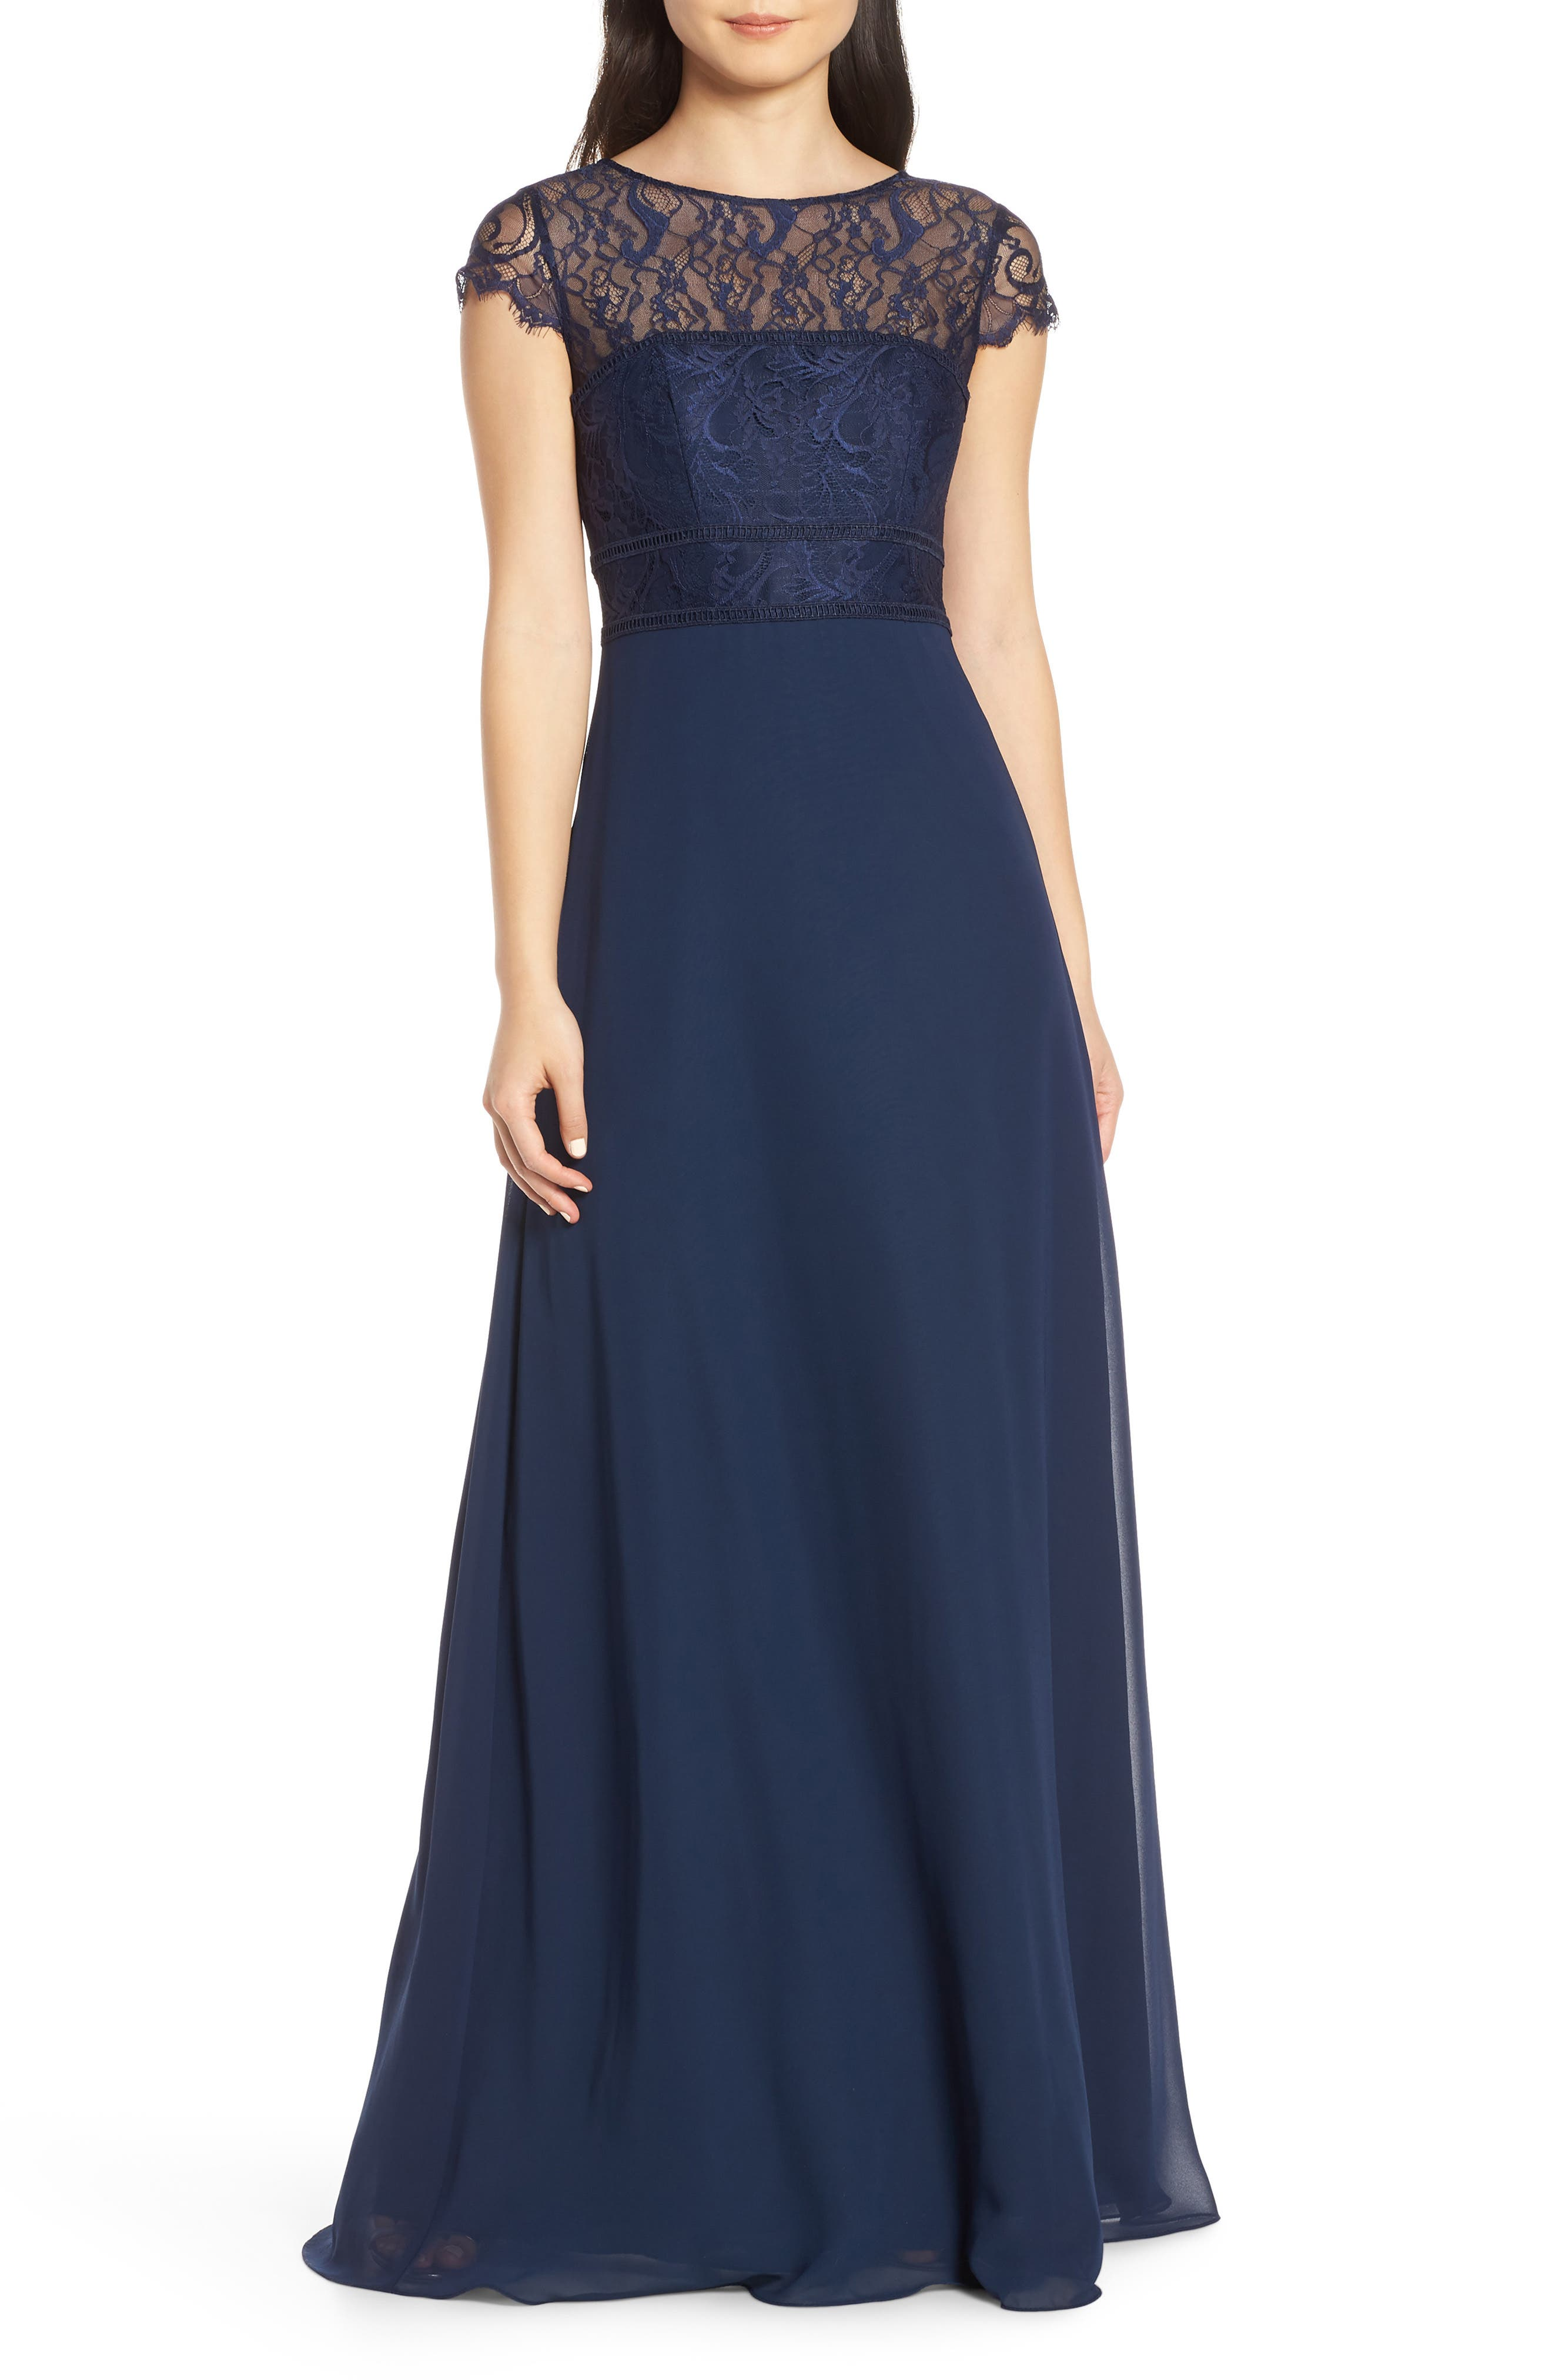 Hayley Paige Occasions Lace Bodice Chiffon Evening Dress, Blue